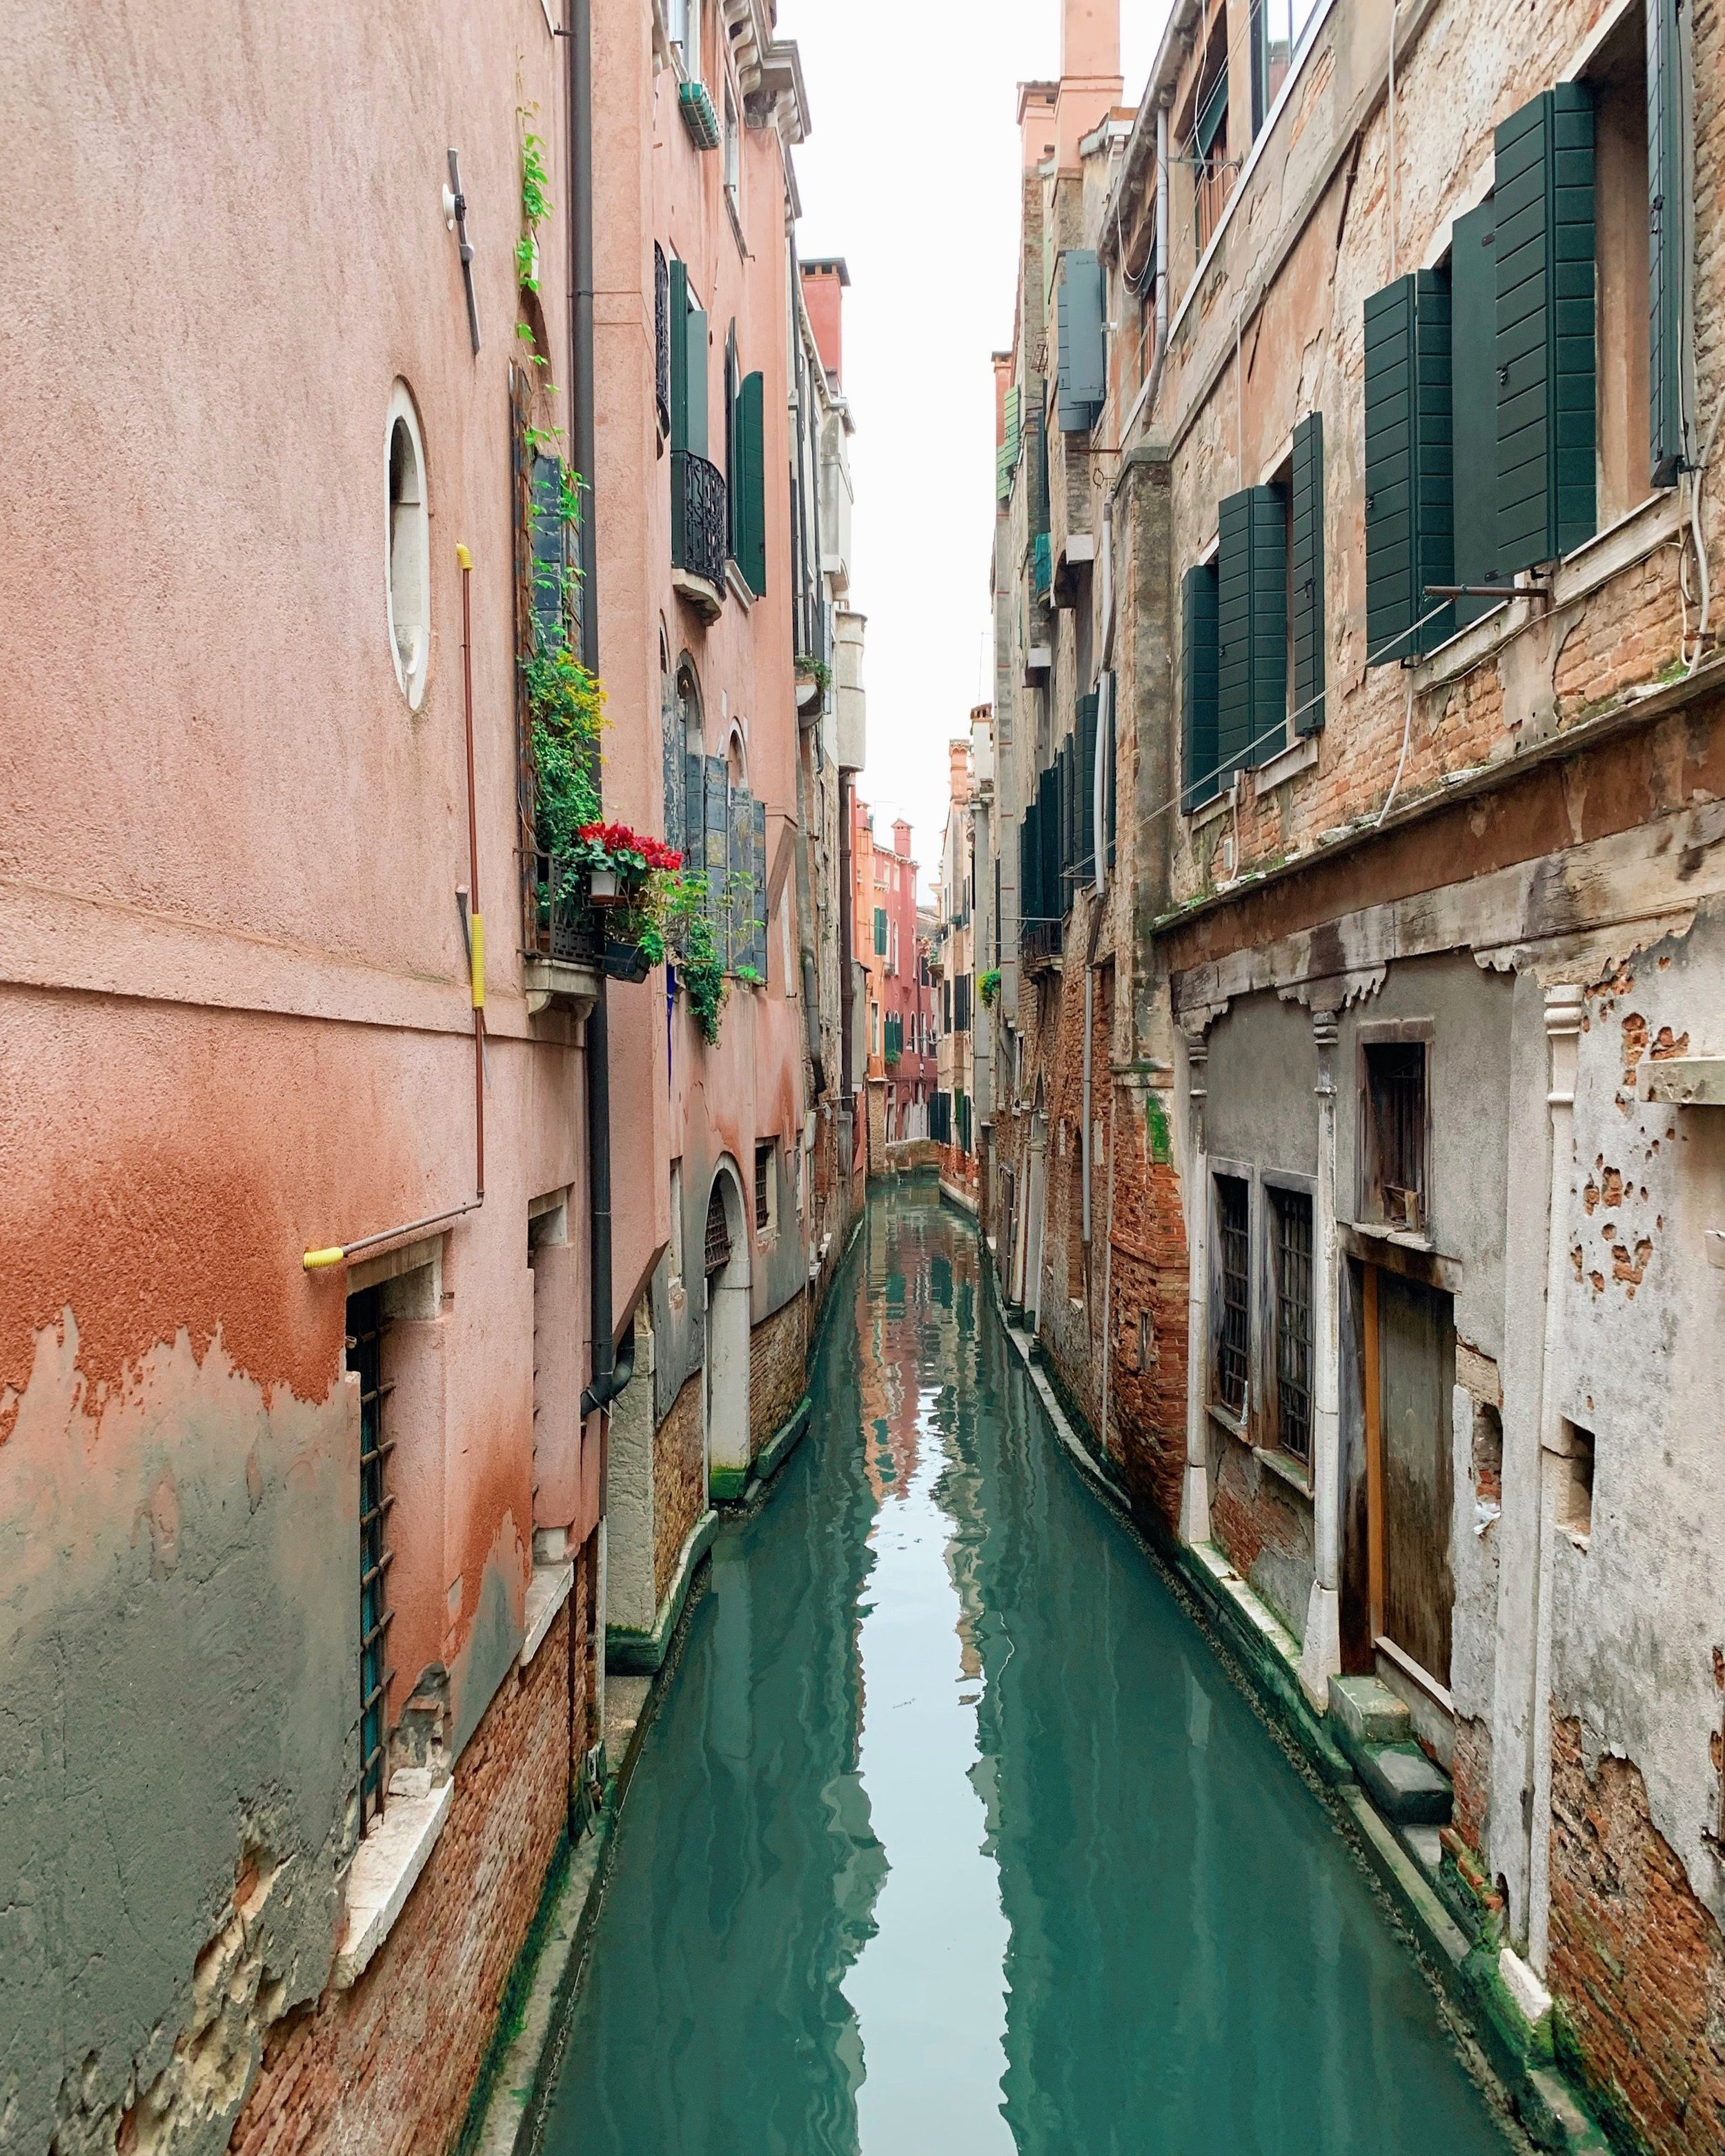 Venice Italy Travel Guide #paisajeurbano